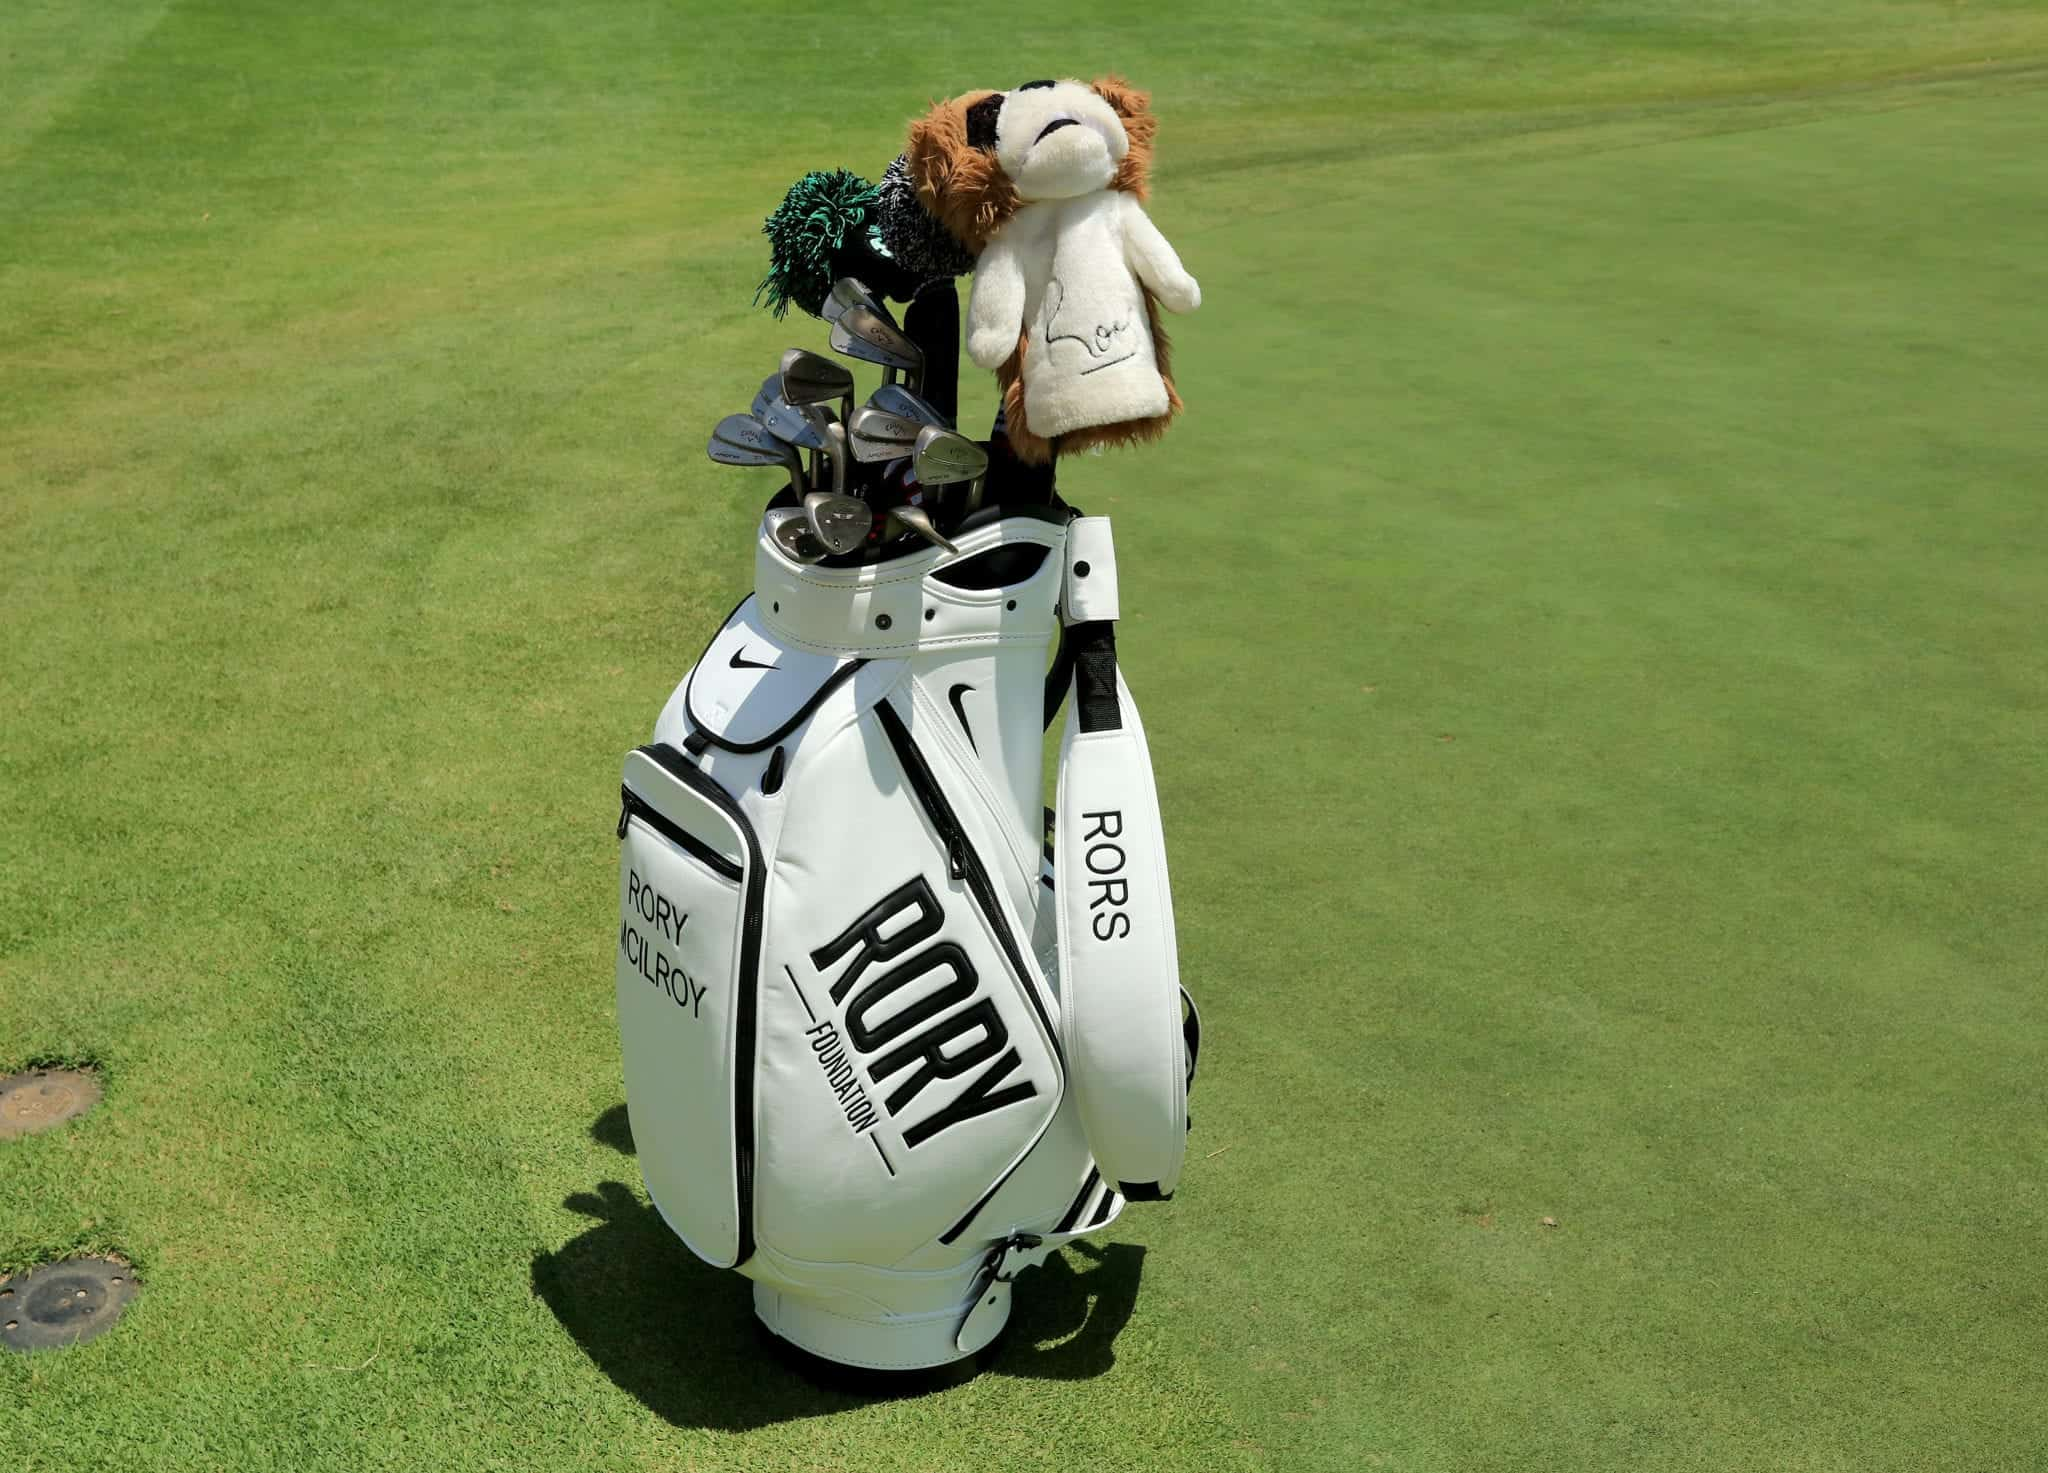 """Rory McIlroy's Golf Bag pictured in white with black writing text of """"RORY"""""""